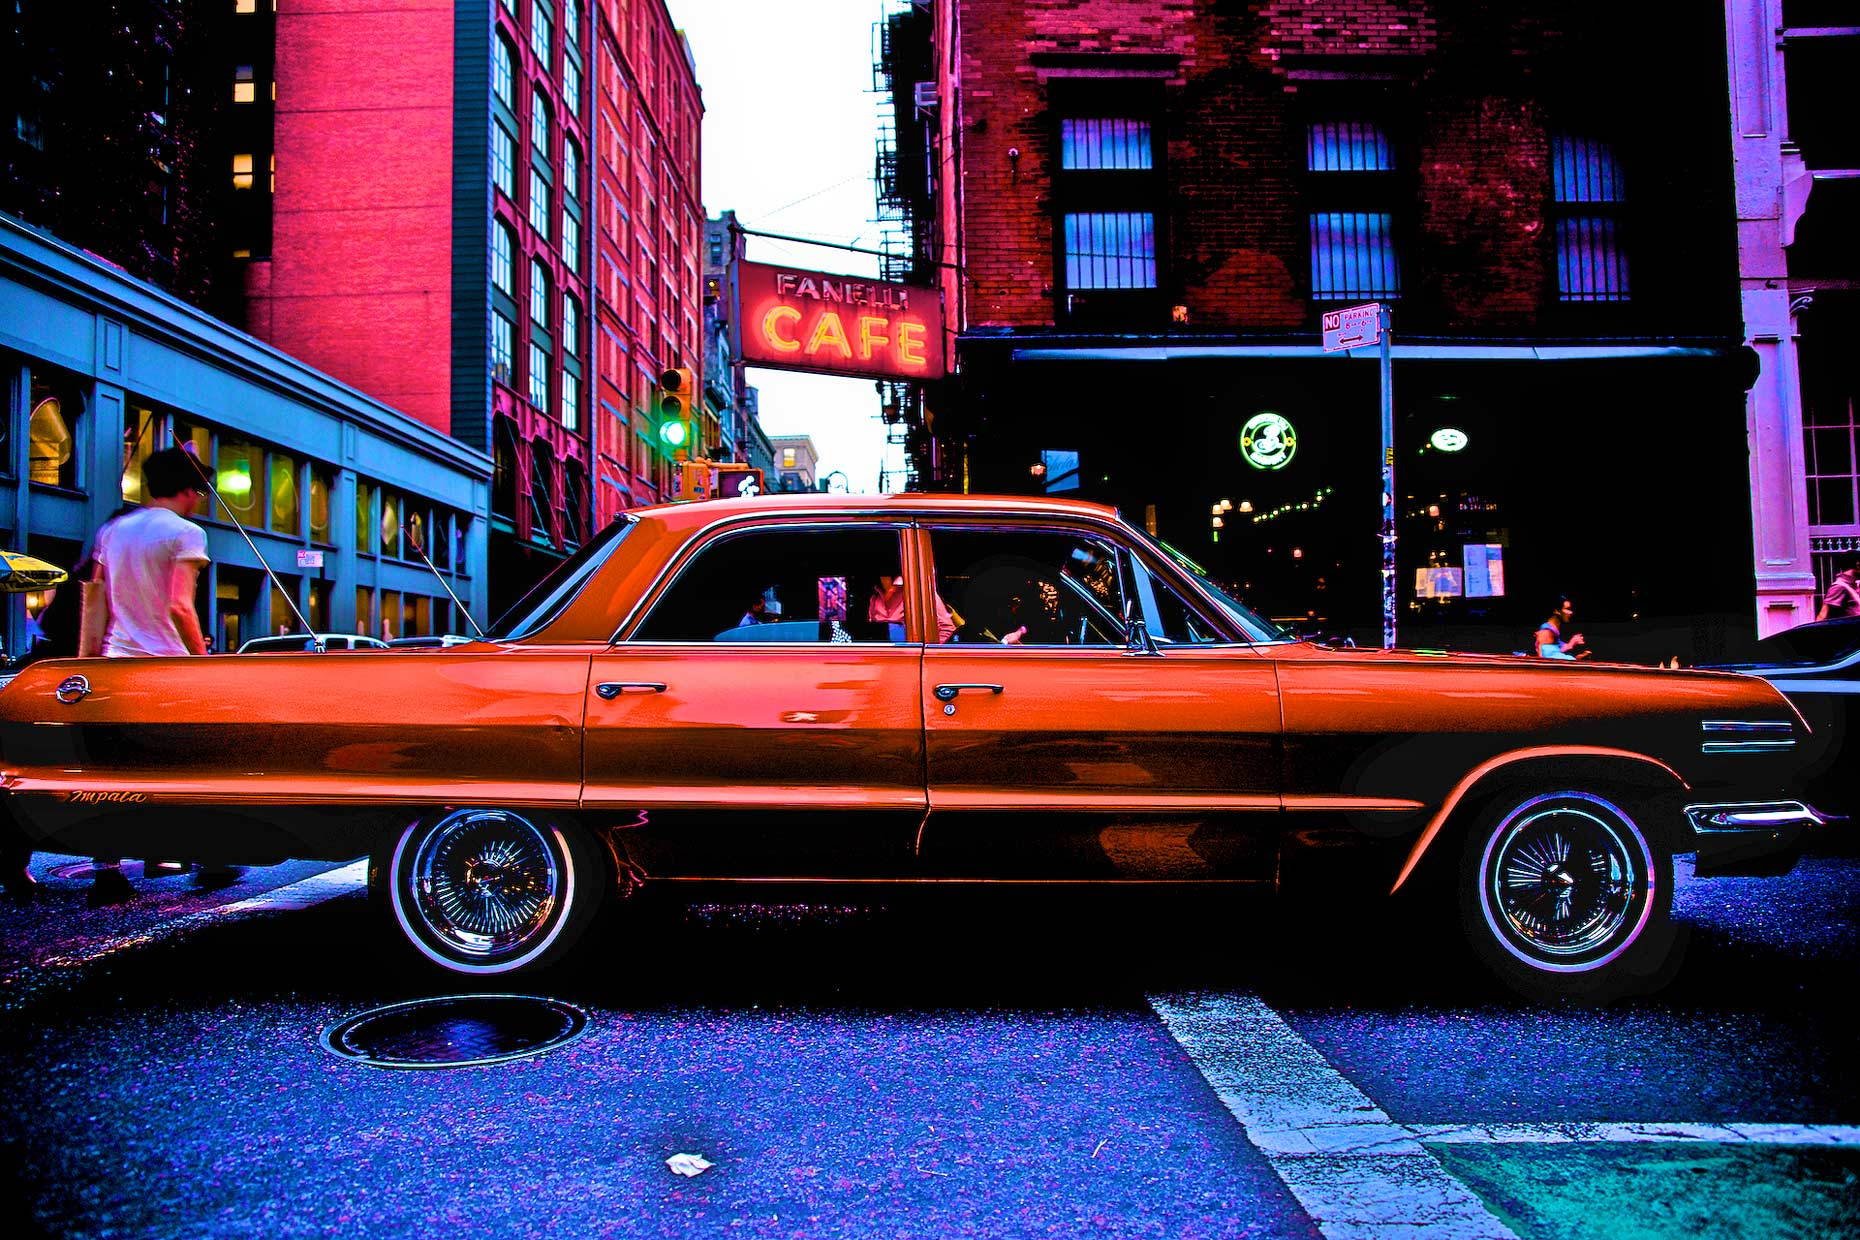 Vintage Chevy Lowrider car in Soho,NYC.